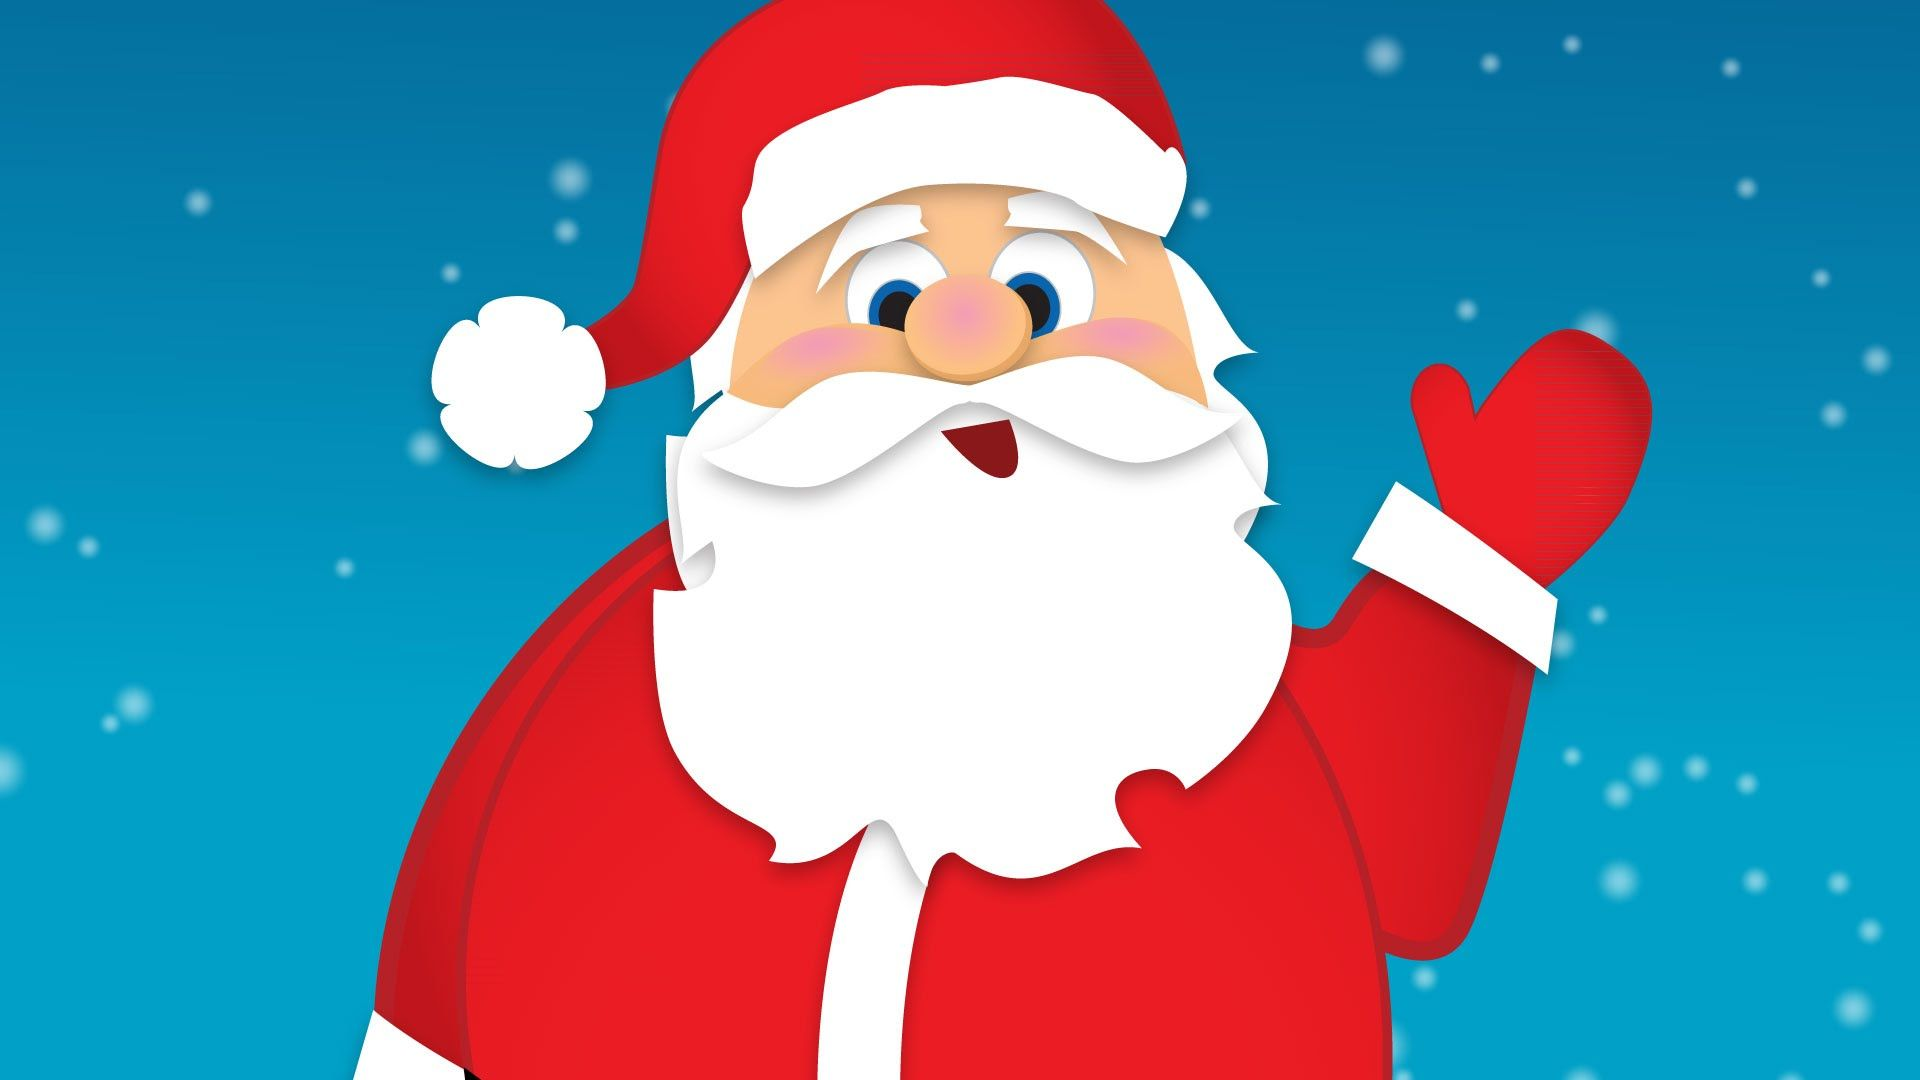 My Kids Are Crazy About This Video A Fun Santa Song In Spanish With A Cute Video El Trineo De Papa Spanish Christmas Songs Christmas Music Spanish Christmas